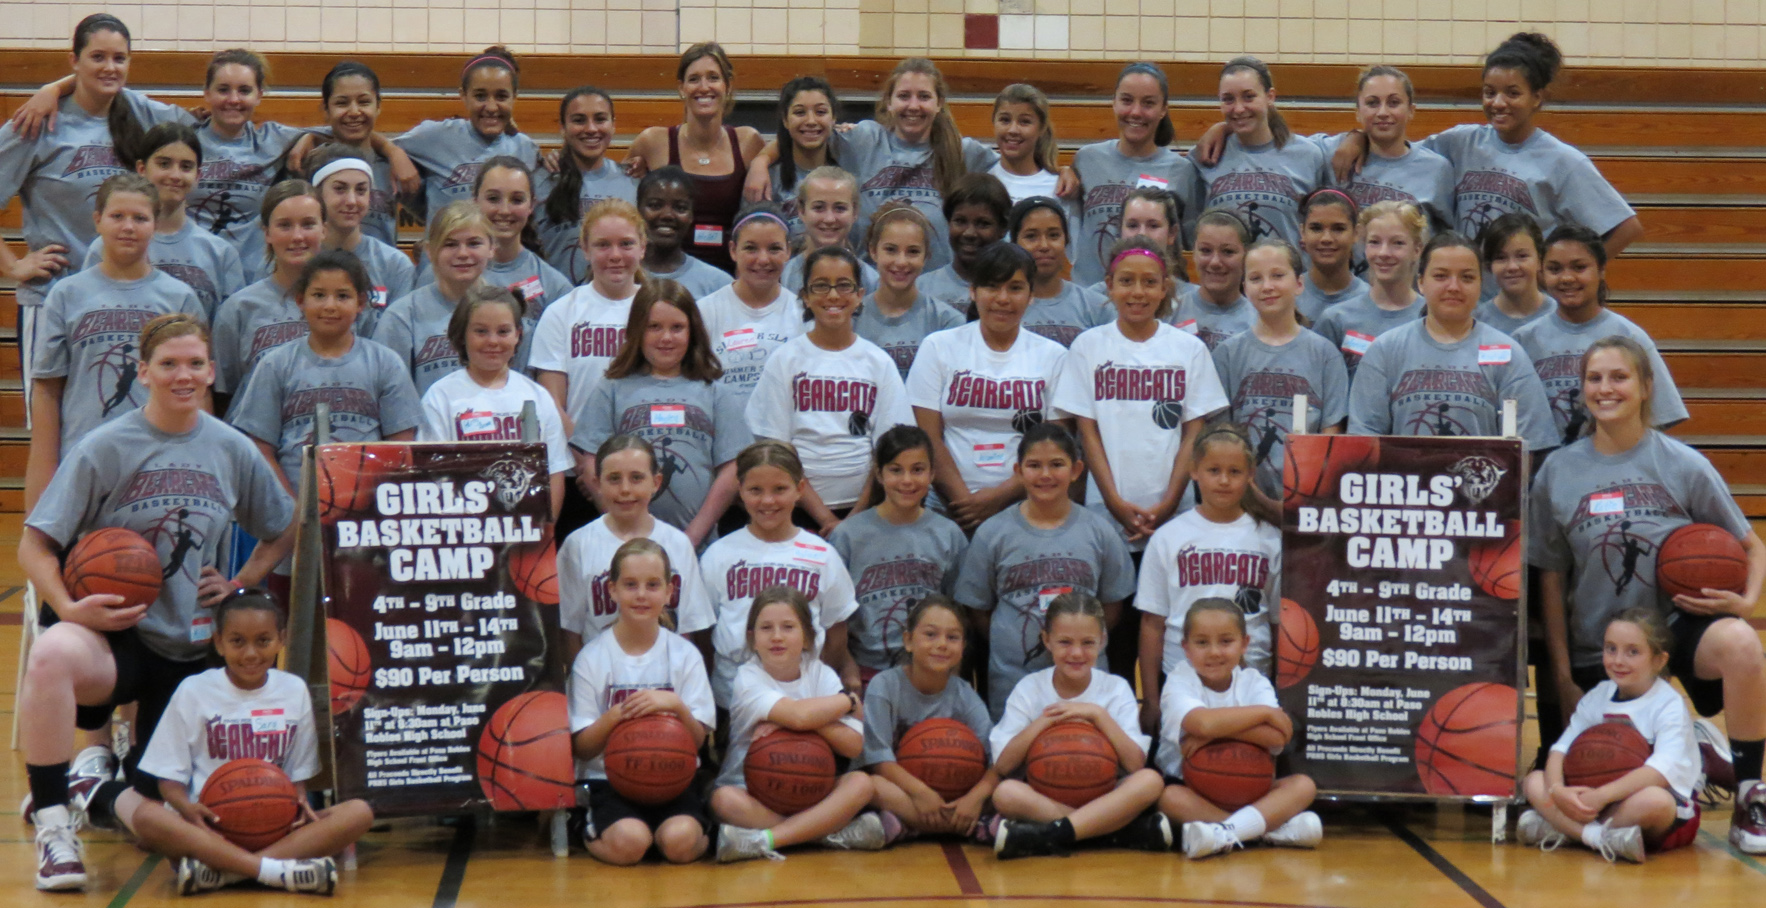 Paso_Girls_Basketball_Camp